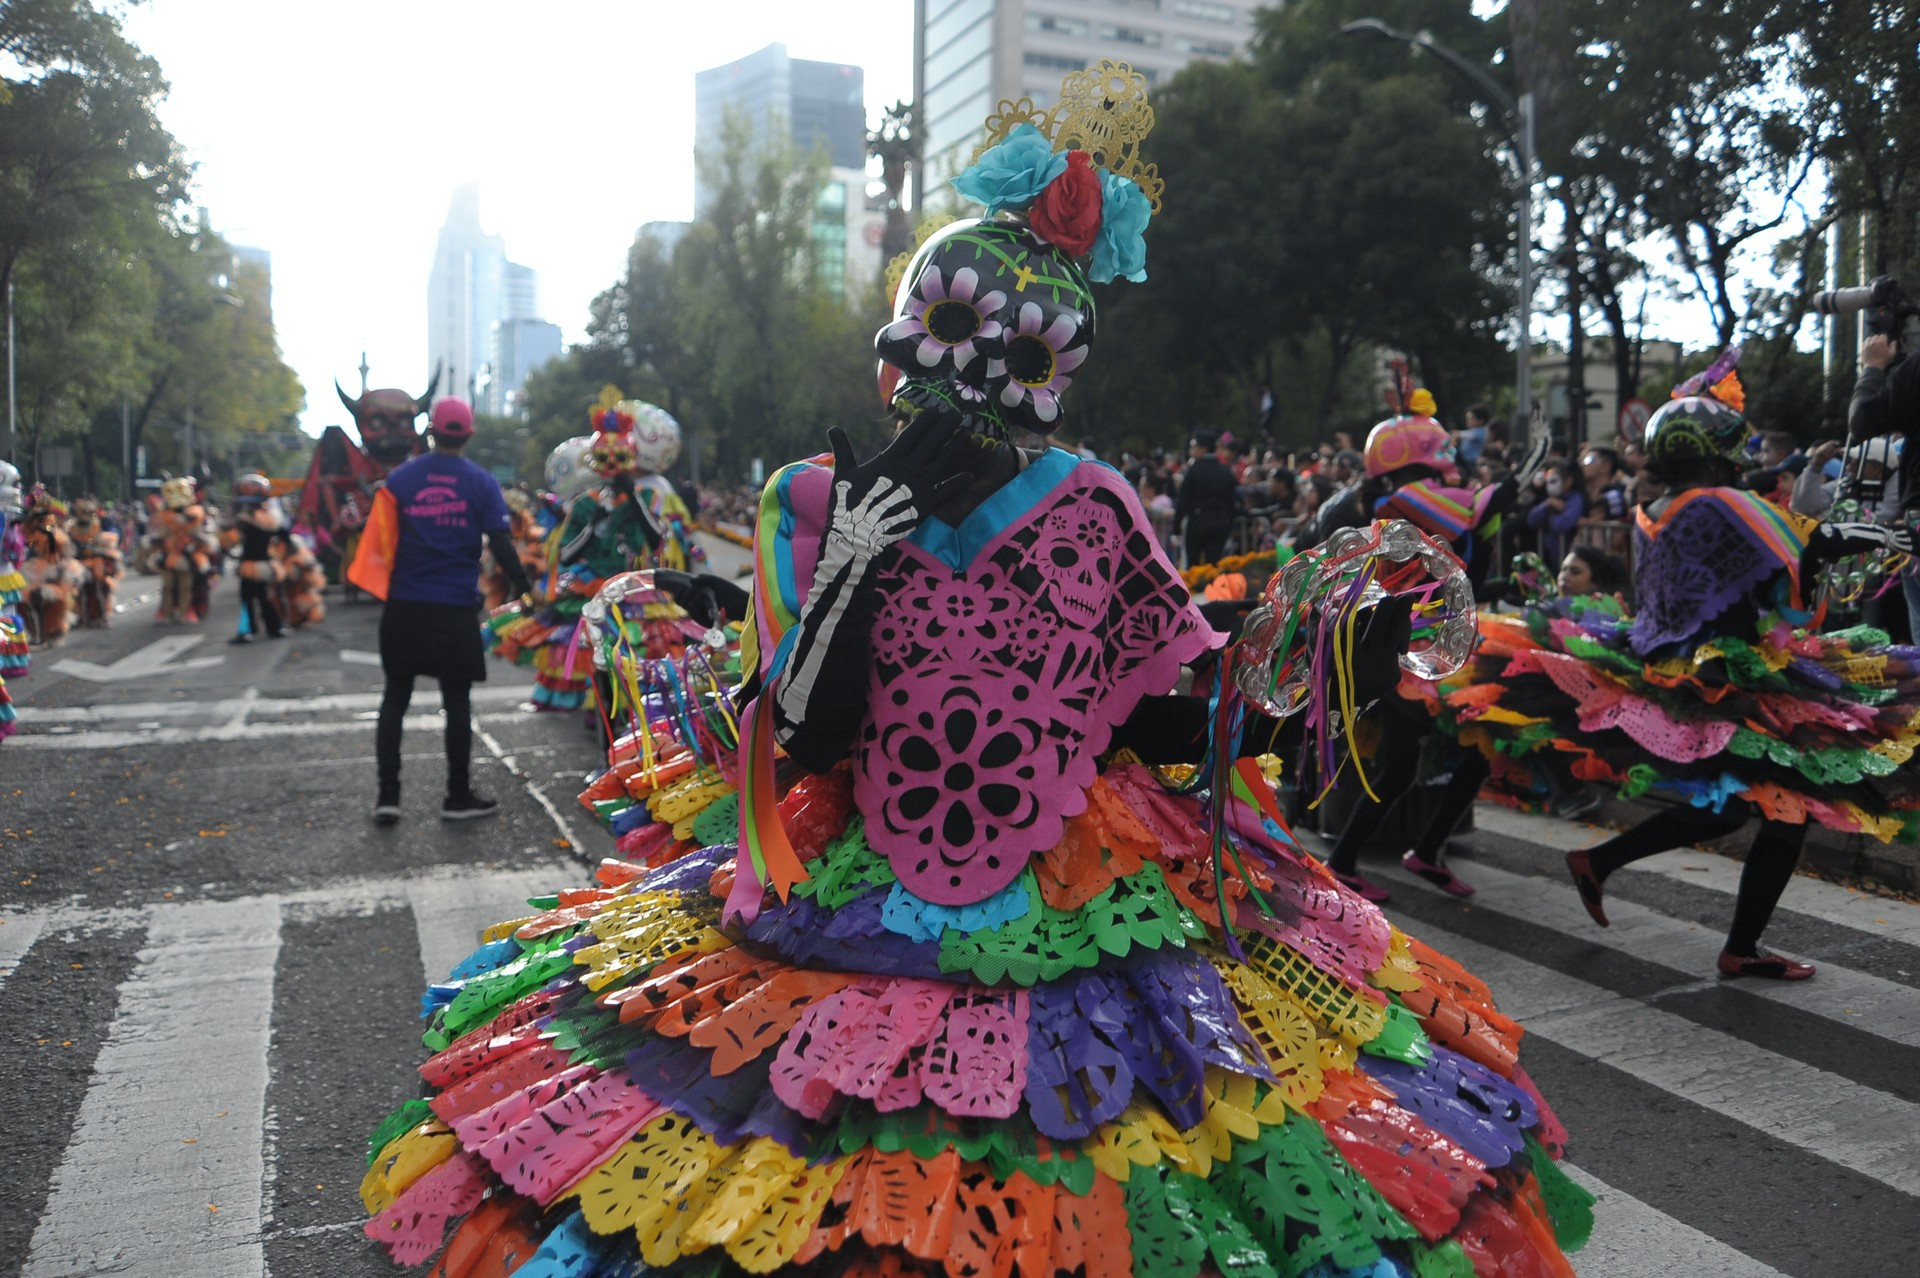 How to experience Mexico's famous Day of the Dead: Mexico City Parade